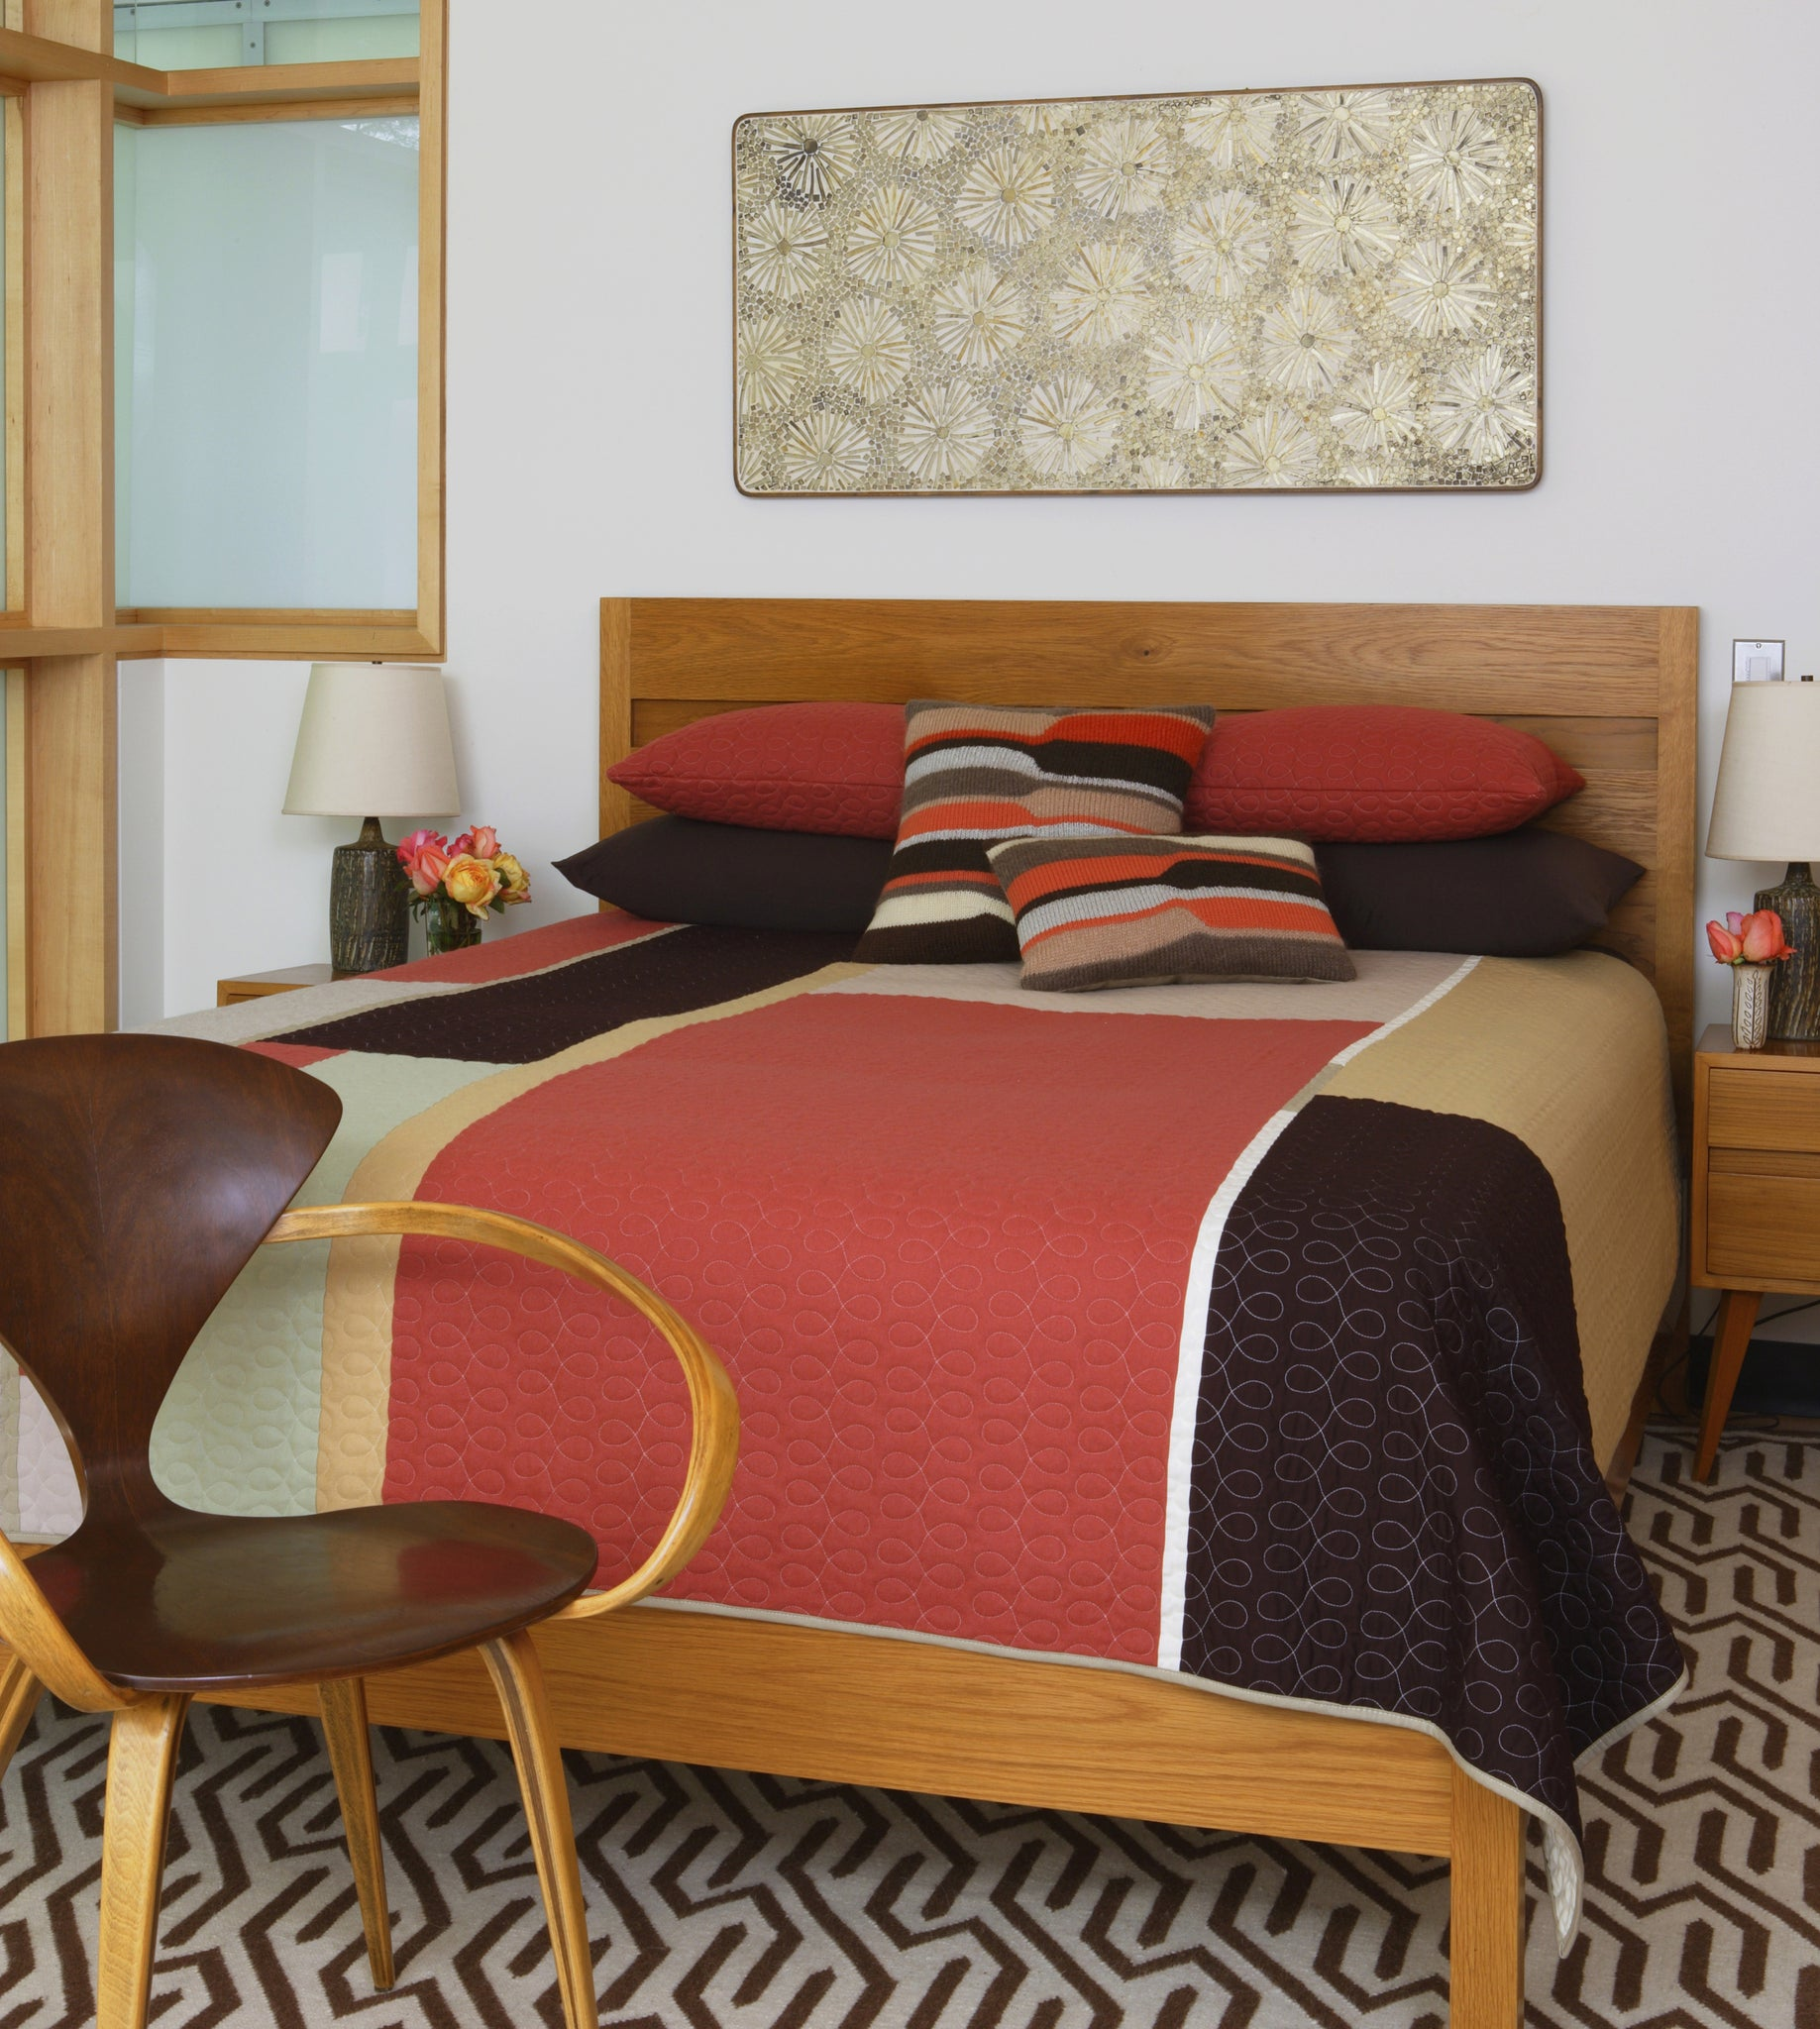 New To Spice Up The Bedroom Inspiring Global Trends That Will Spice Up Your Bedroom Decor